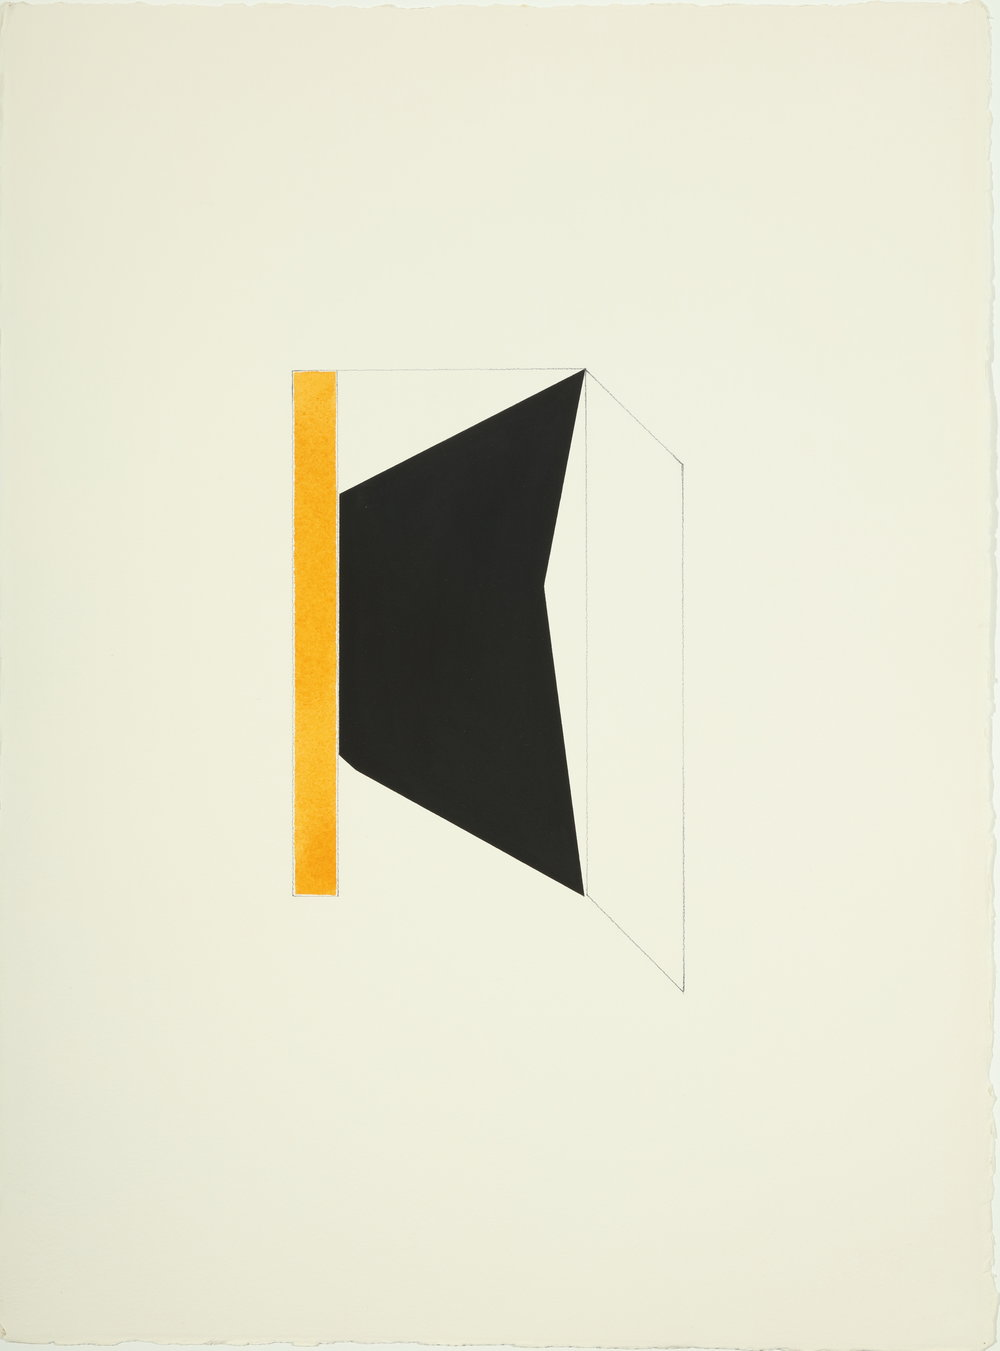 The Fox,  1977 - 1978         Acrylic and pencil on paper 30.5H x 22.875W inches unframed